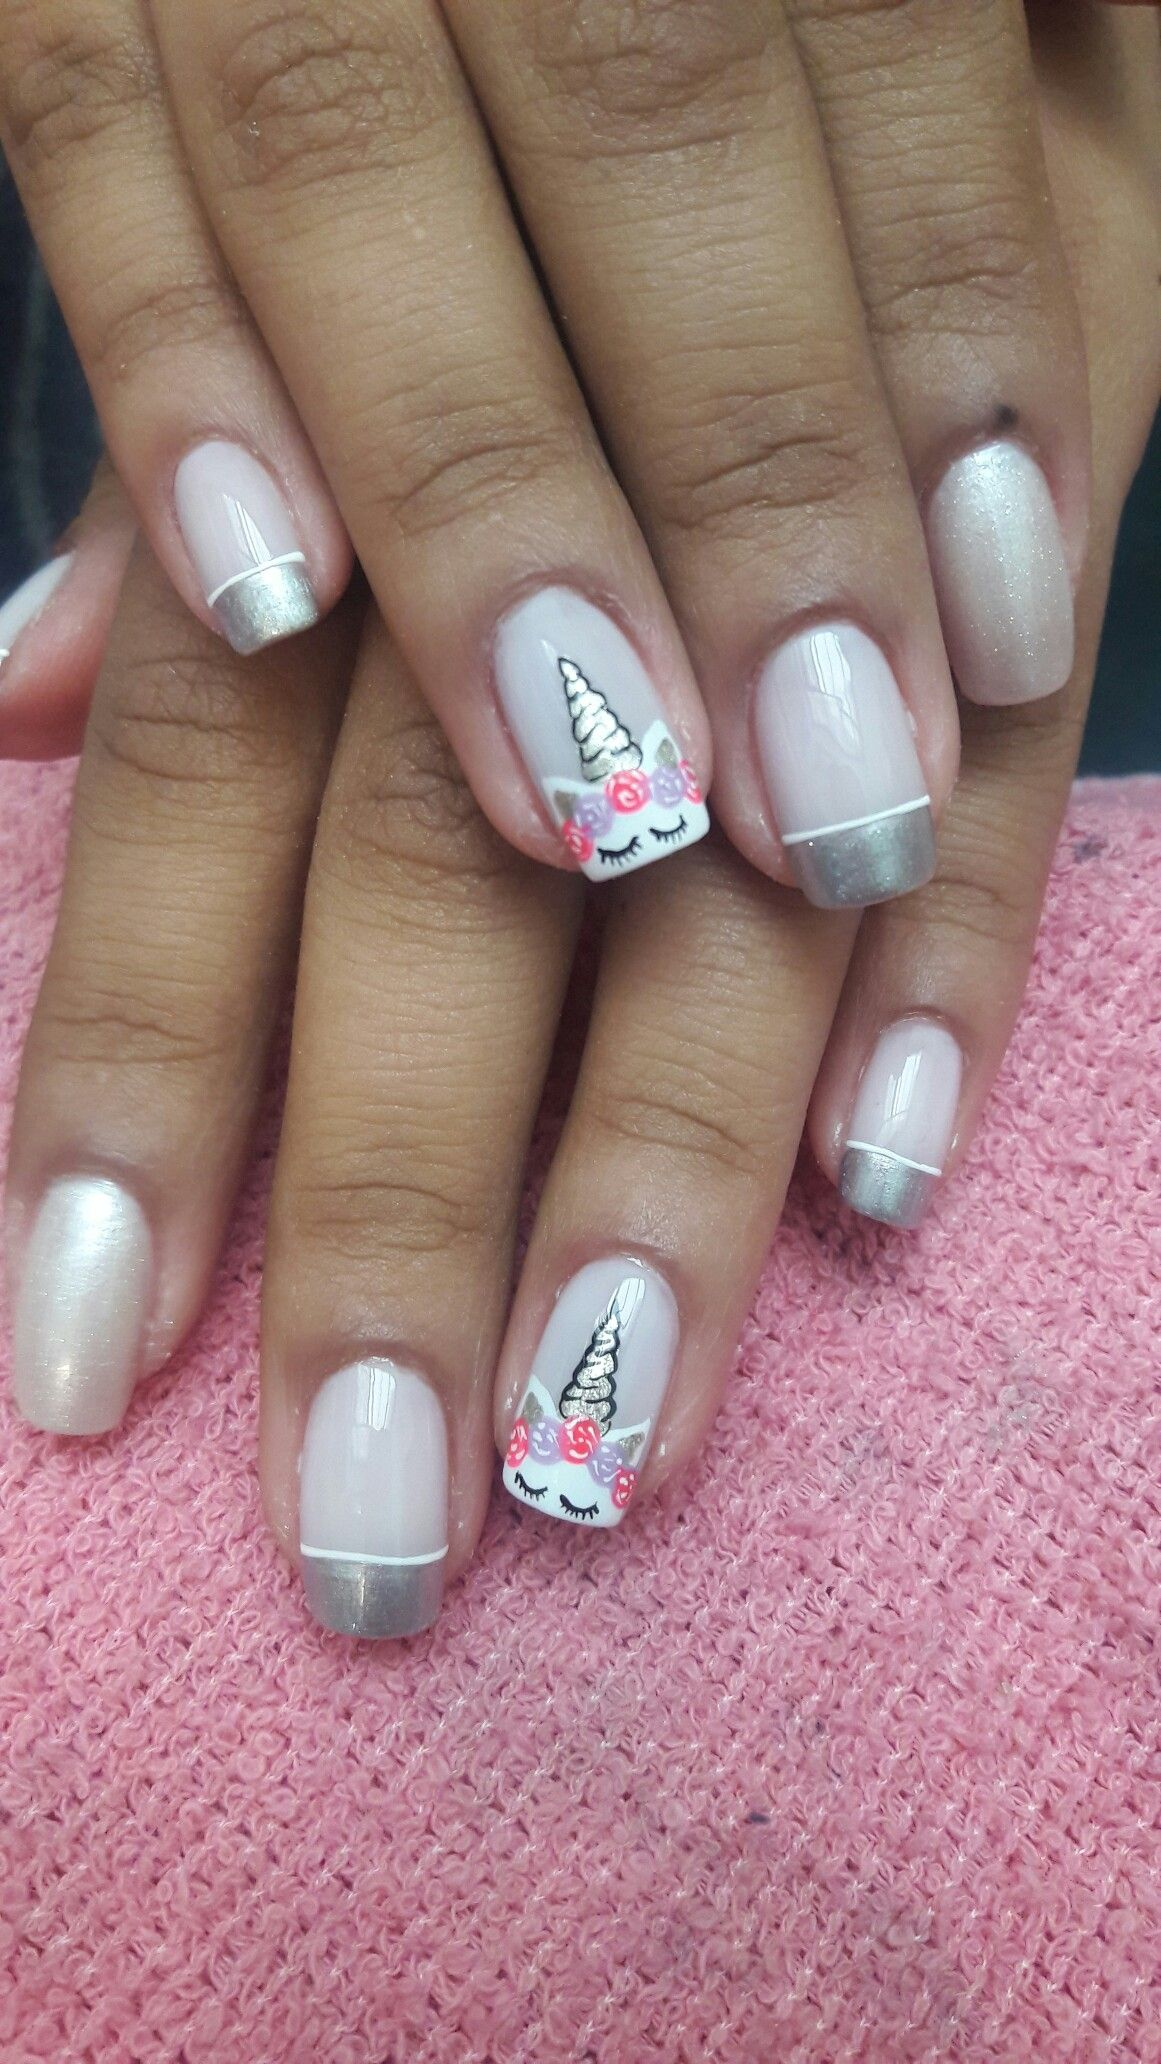 Pin by Evellyn Rodrigues on Arte de unha | Pinterest | Manicure ...